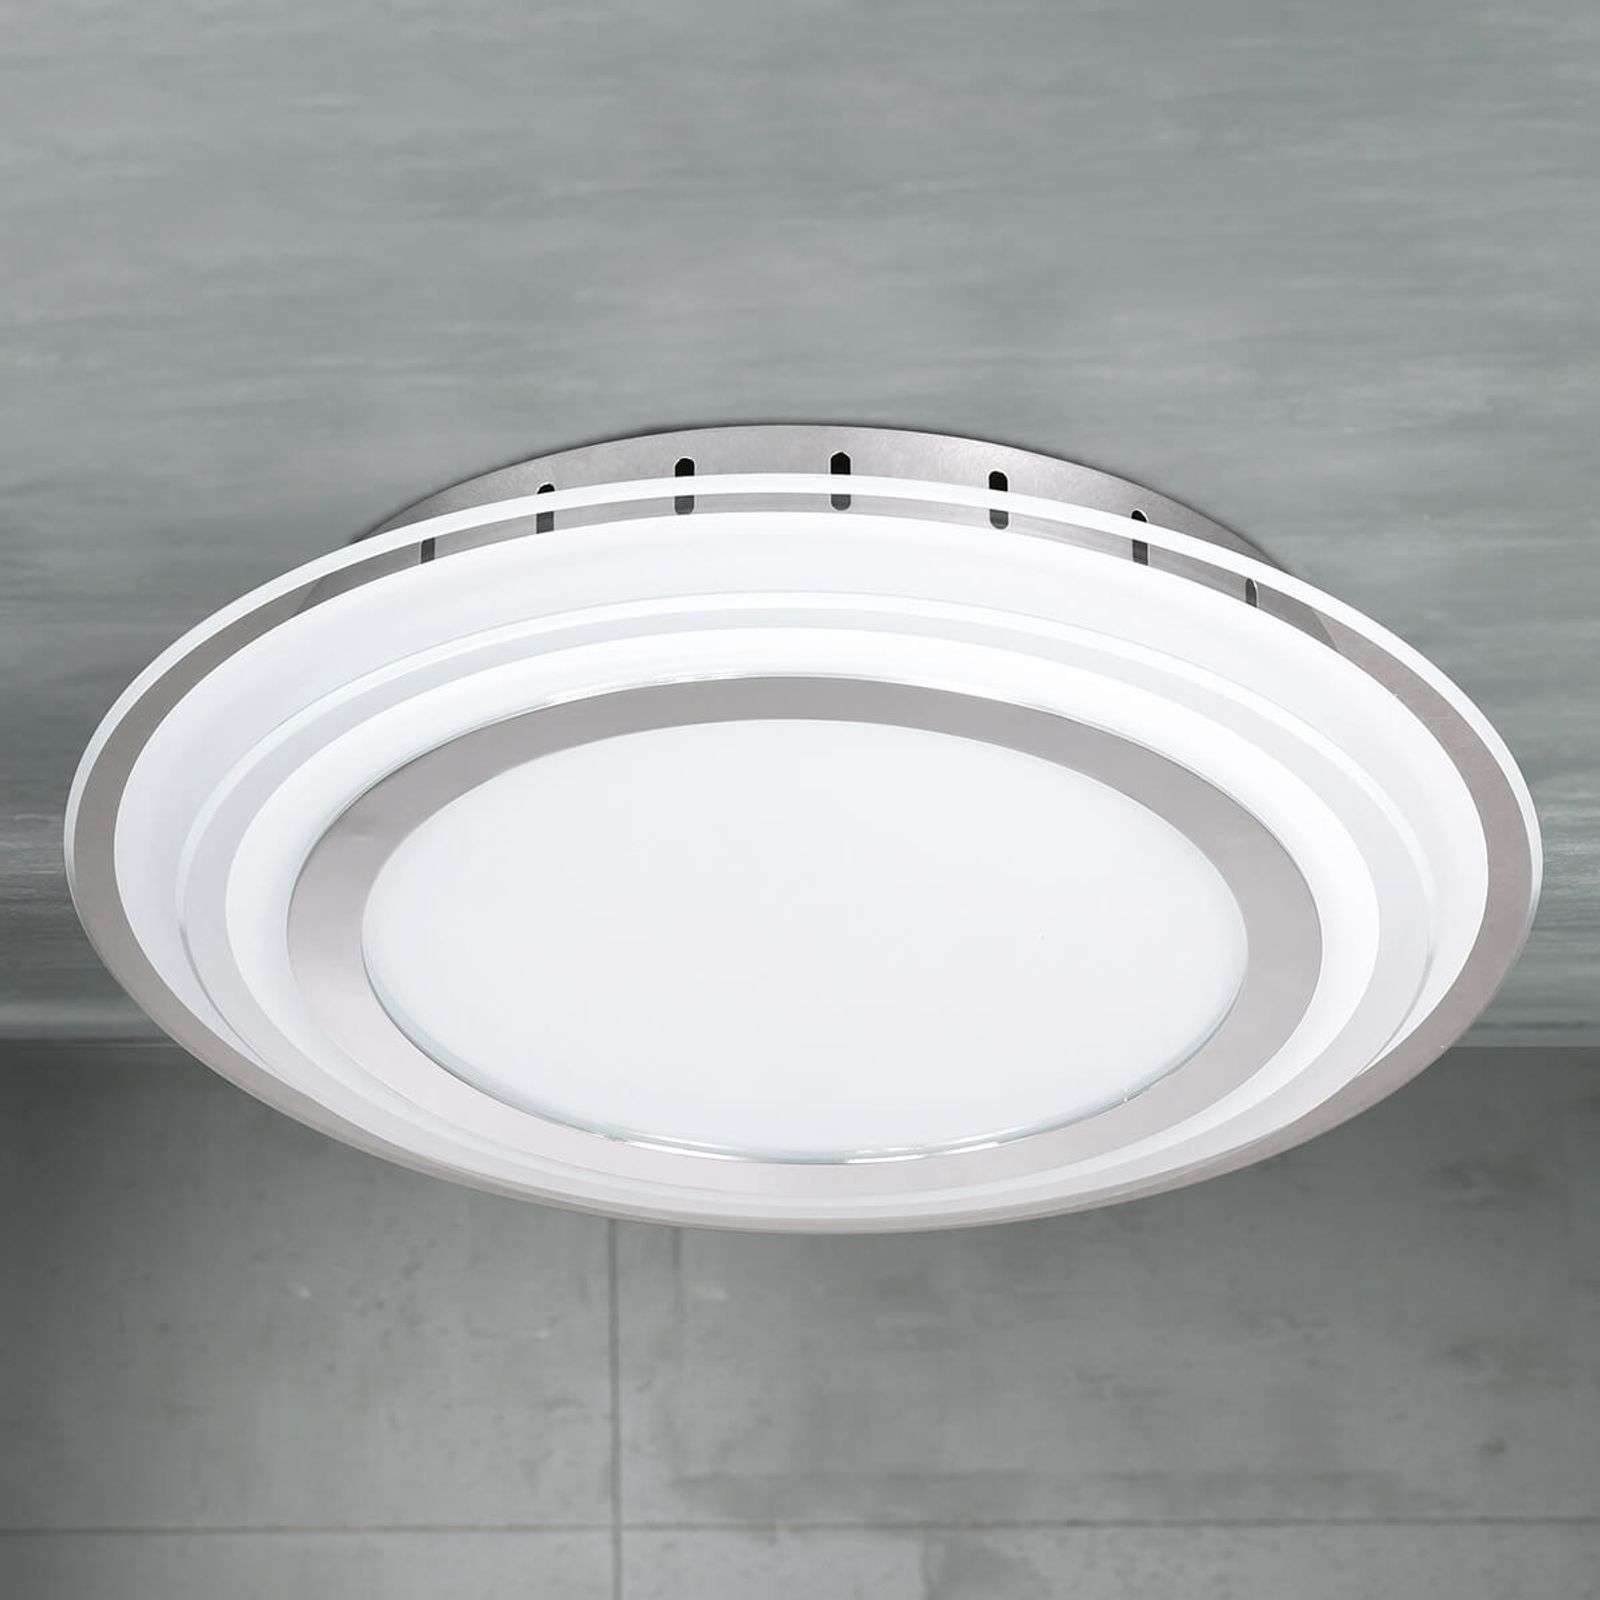 Plafonnier LED Nancy, forme ronde